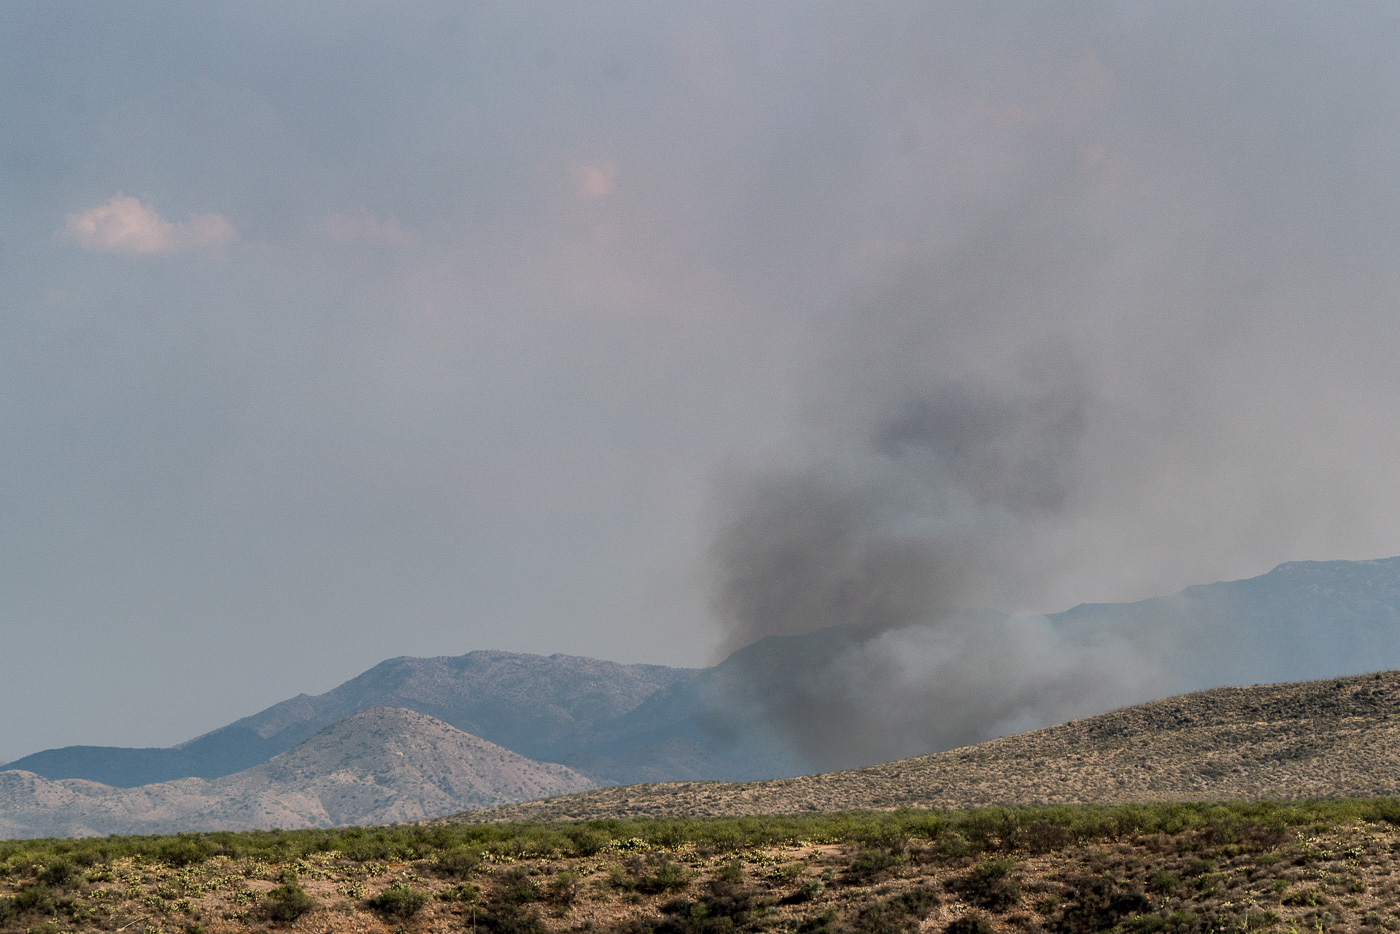 A plume of smoke east of the Evans Mountain area with Piety Hill on the left. July 2017.